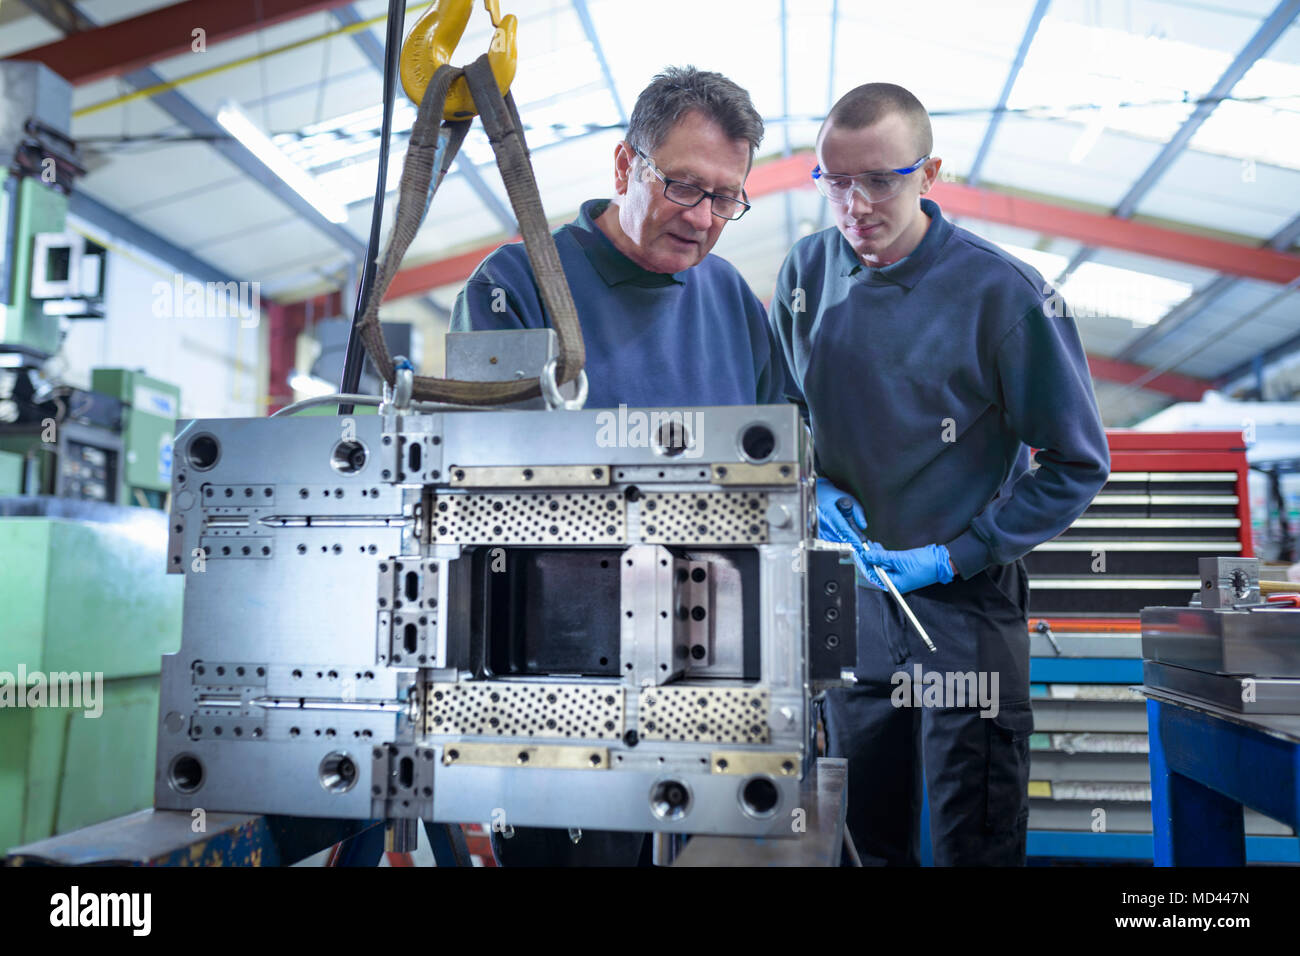 Engineer and apprentice working on mould for plastic injection in precision engineering factory - Stock Image